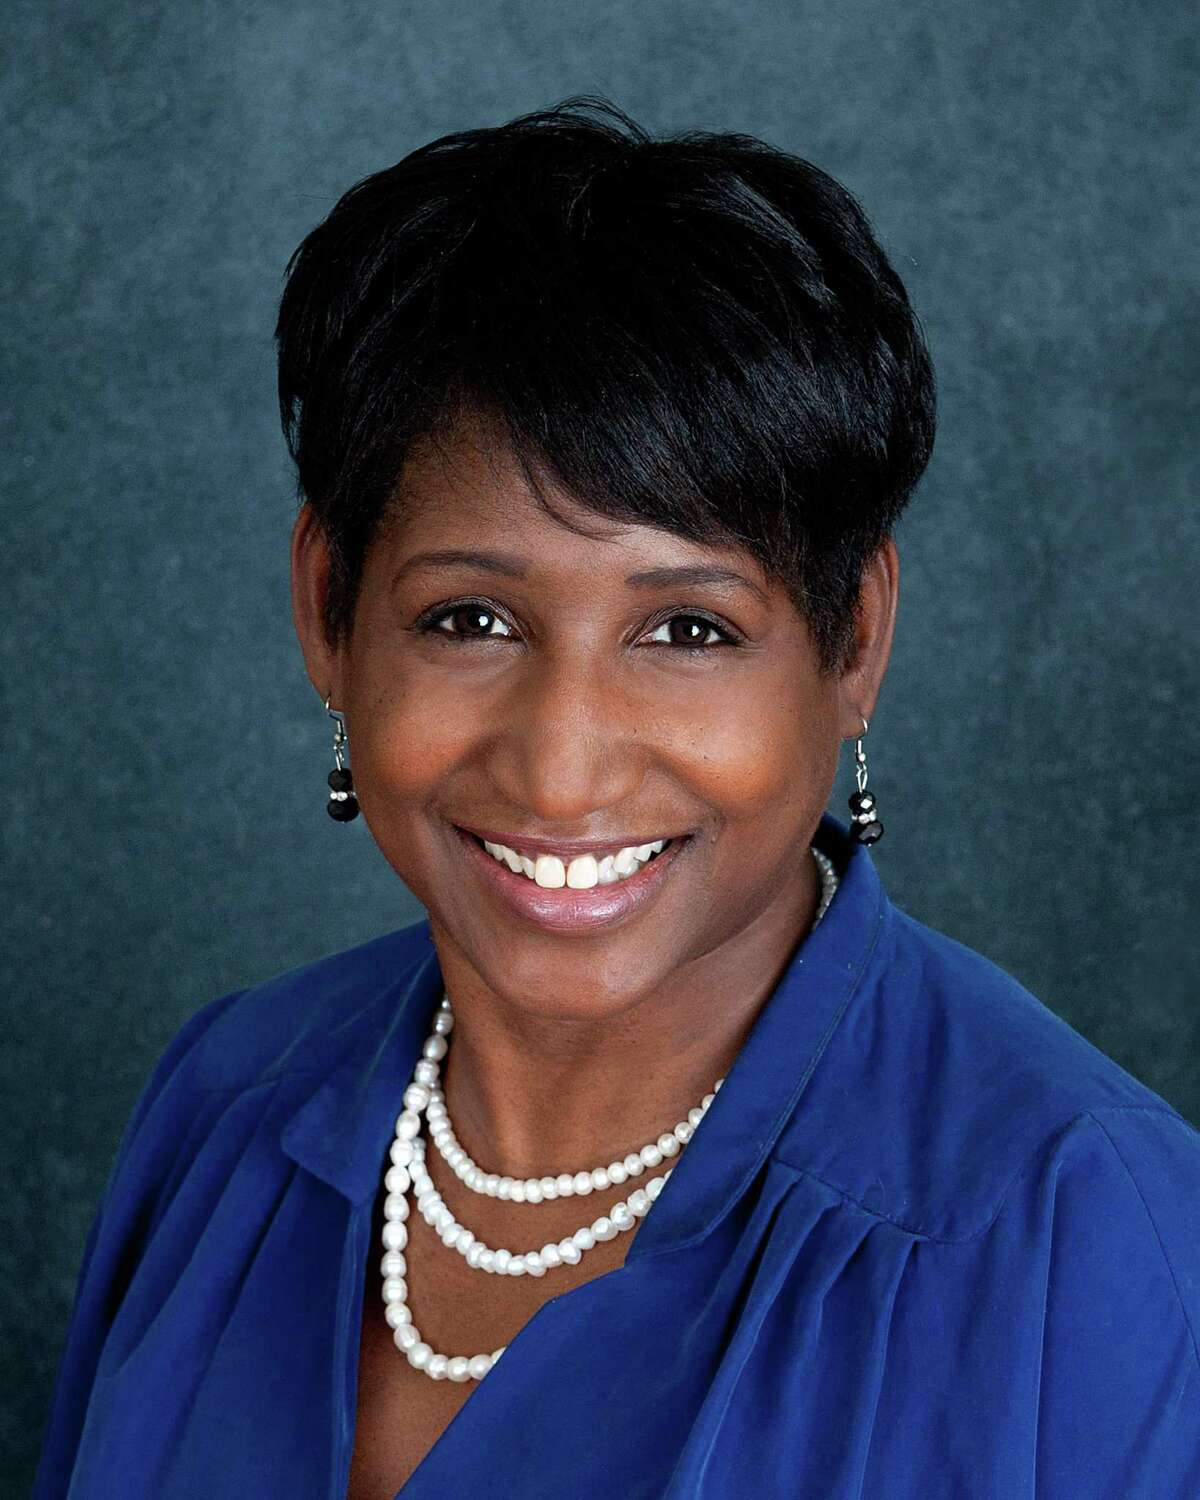 Jacquen Jordan-Byron, a member of the Democratic Town Committee in Norwalk, Conn., announced her intention to run for Vice Chair of the DTC on March 3, 2020.